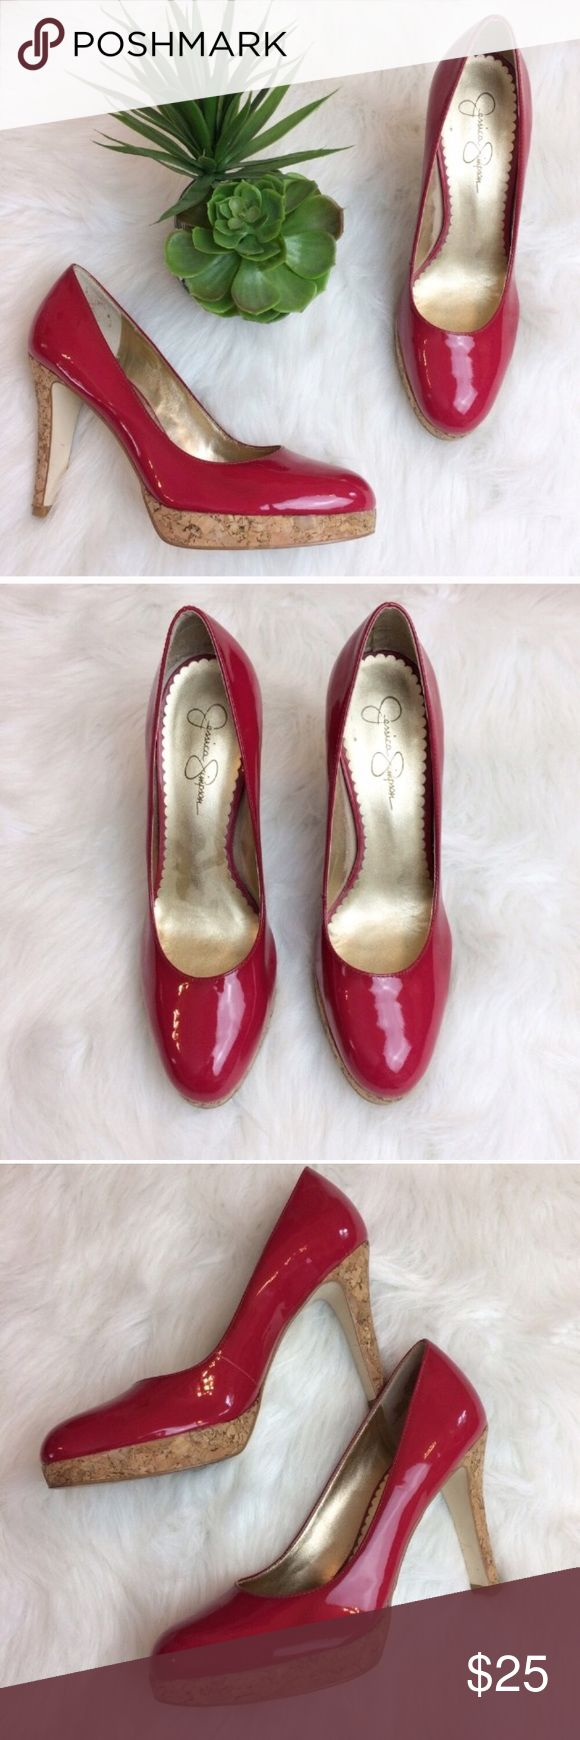 "Jessica Simpson Red Glossy Heels Jessica Simpson red glossy heels. Size 9. Heels measure 4 1/4"". A couple spots where red is darker, (pictured) but not really noticeable. Jessica Simpson Shoes Heels"